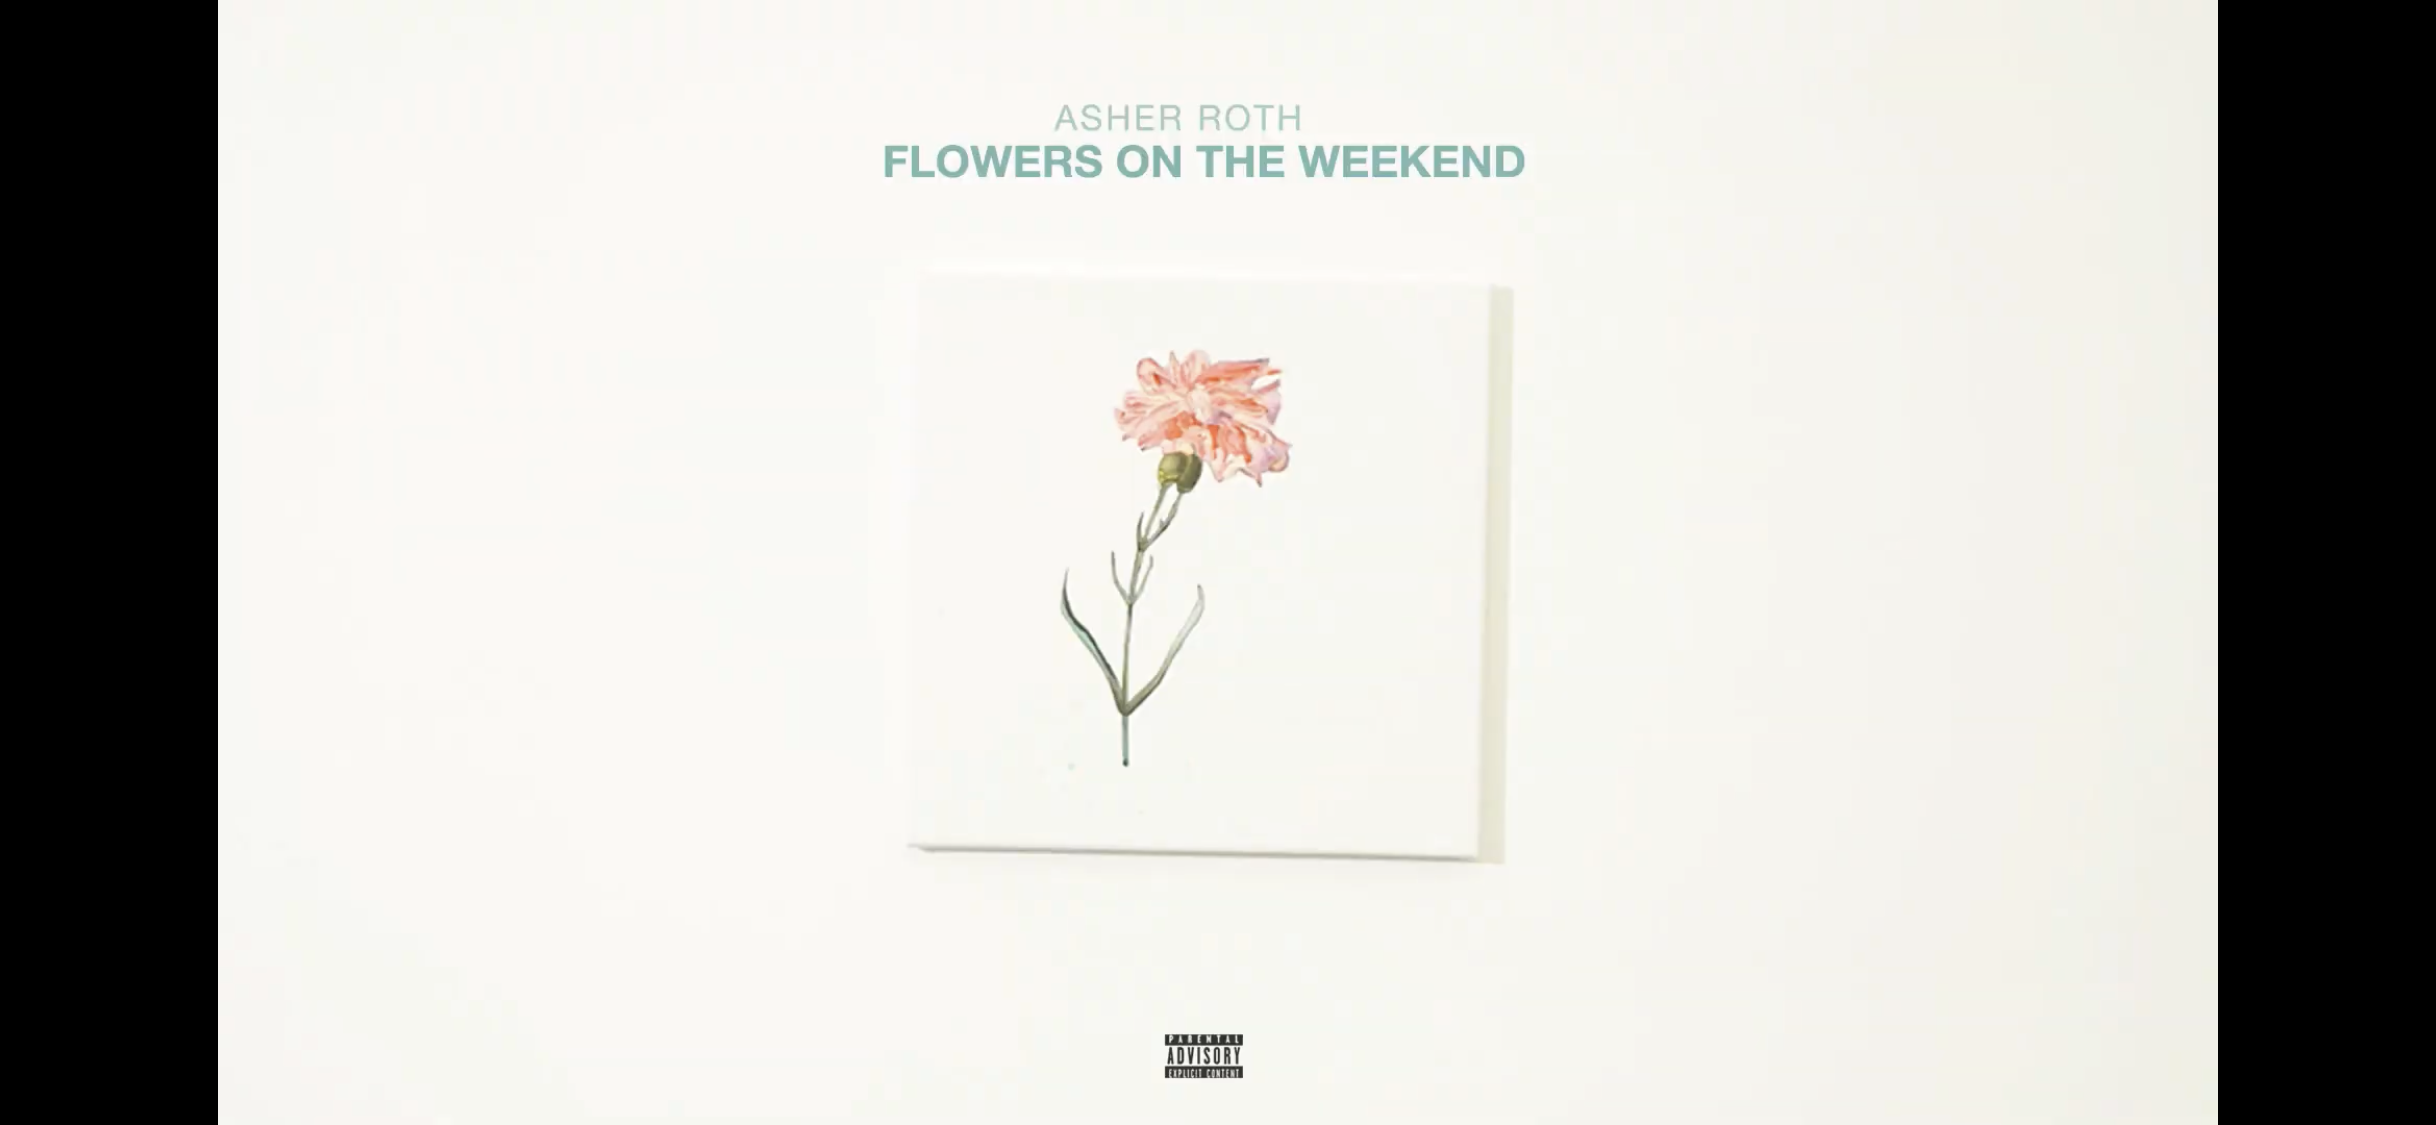 Asher Roth - Flowers On The Weekend (Teaser) | Album Out April 23, 2020